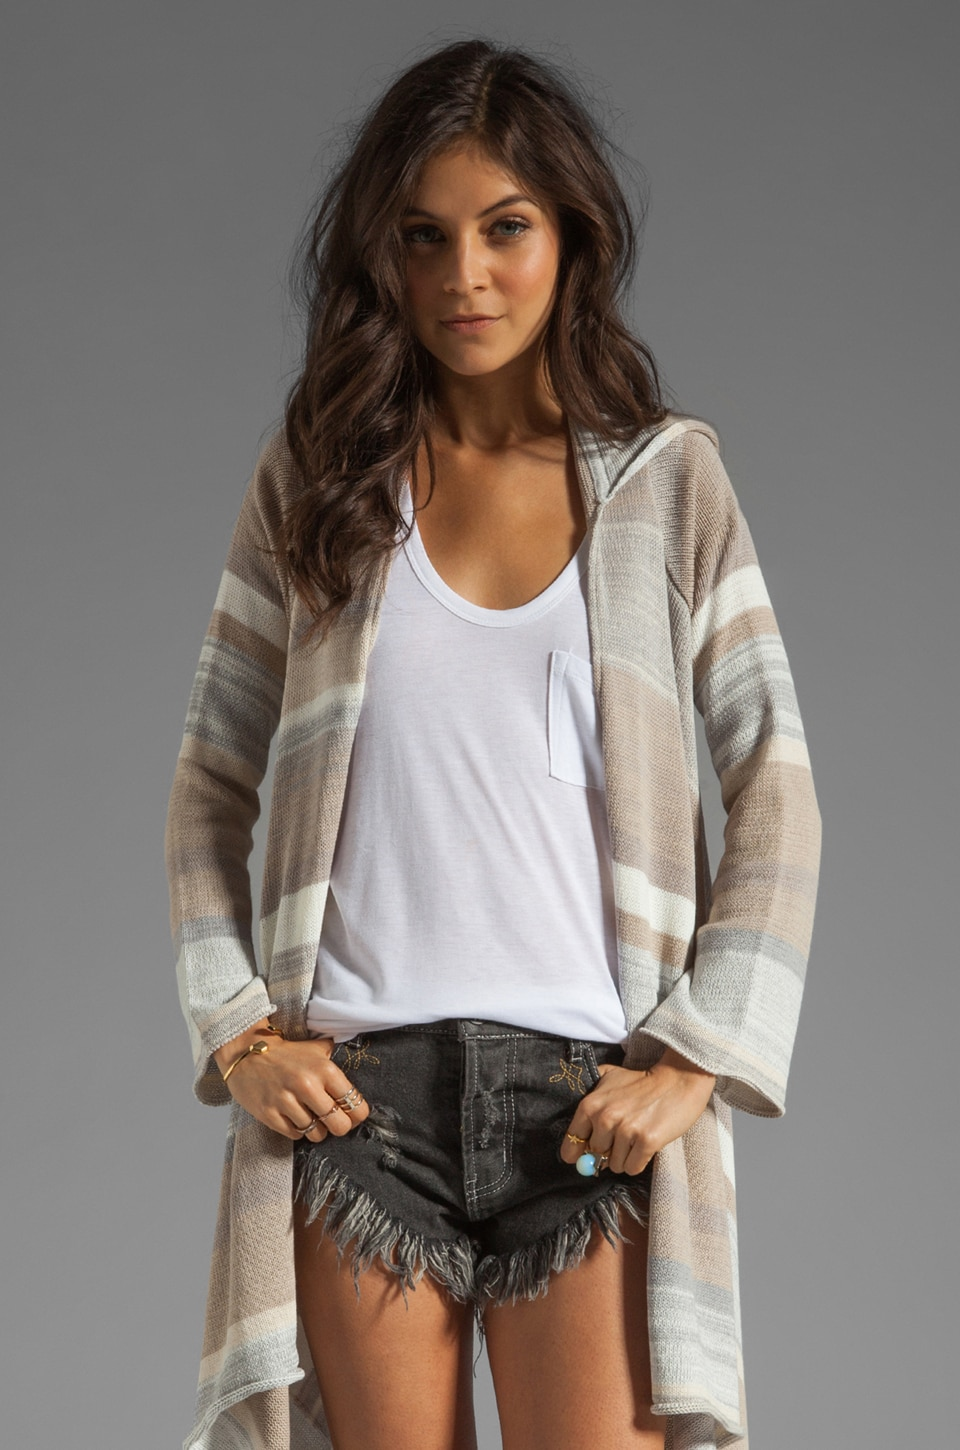 Goddis Leona Cardigan in Boardwalk